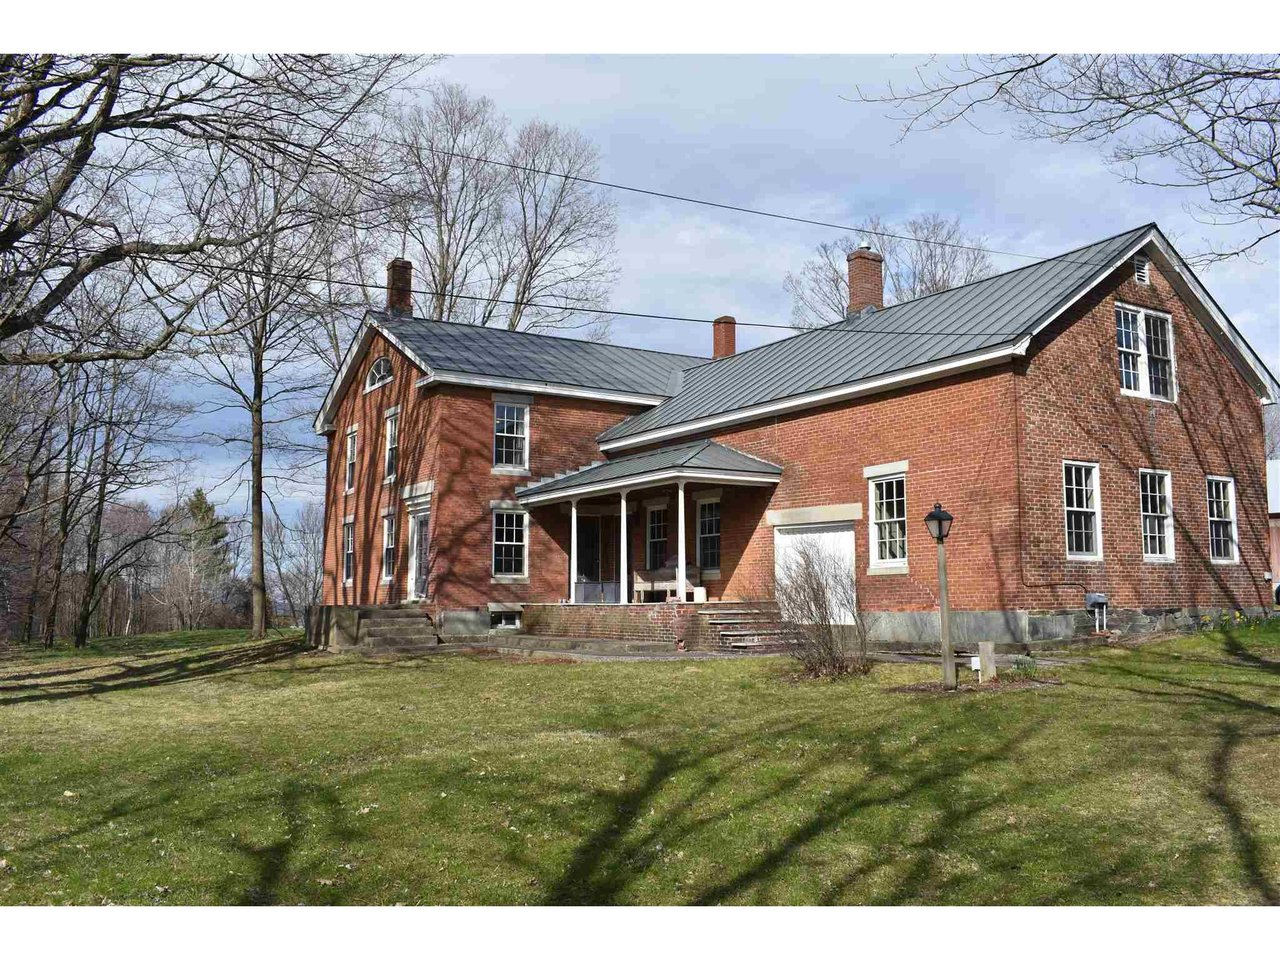 Sold property in Westford